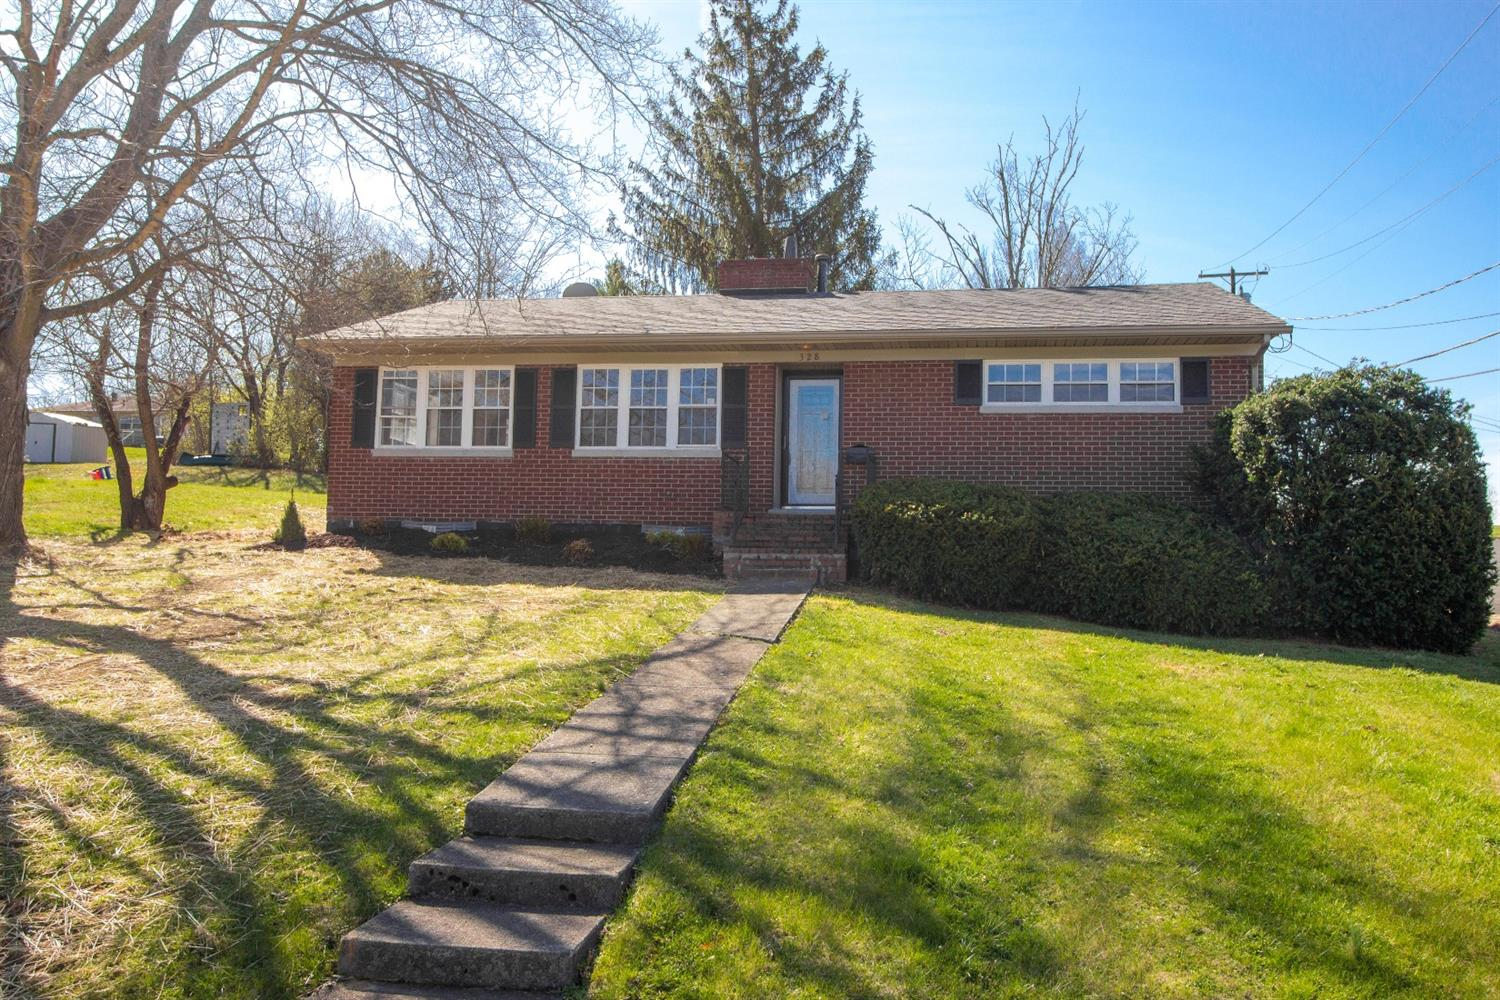 Here%20is%20a%20must-see%20property%20located%20in%20quite%20Harrodsburg,%20KY!%20%20A%20recently%20updated%203-bedroom,%202-bathroom,%20the%20home%20is%20located%20on%20a%20large%20corner%20lot%20with%20a%20single-car%20garage%20and%20brand-new%20deck.%20%20The%20home%20features,%20All%20New%20Appliances,%20refinished%20hardwood%20floors,%20new%20tile%20flooring,%20an%20upgraded%20modern%20kitchen,%20fresh%20coat%20of%20paint.%20%20Both%20bathrooms%20have%20been%20renovated%20as%20well.%20%20In%20addition,%20the%20HVAC%20and%20Hot%20Water%20Heater%20are%20both%20brand%20new.%20%20Check%20out%20this%20home%20as%20soon%20as%20you%20can,%20it%20won't%20last%20long!